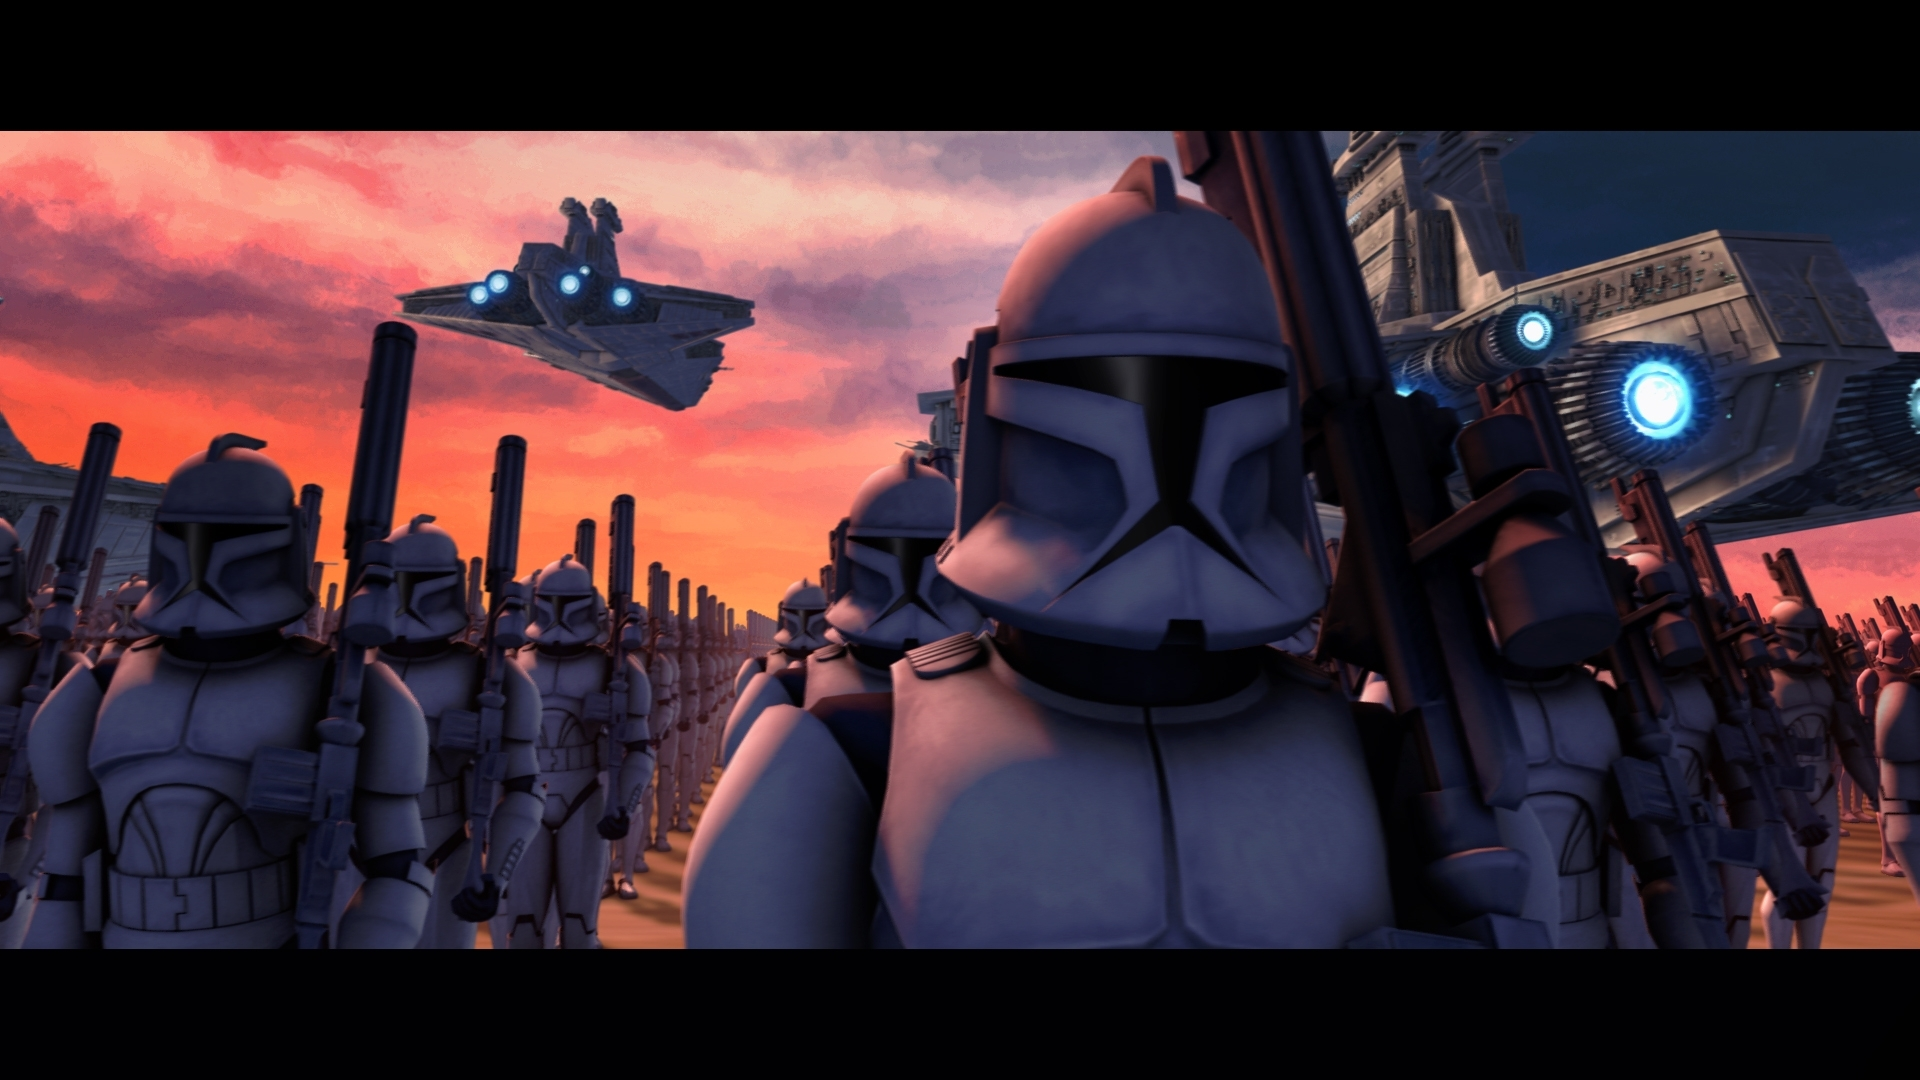 photo 22 of 24, star wars clone troopers